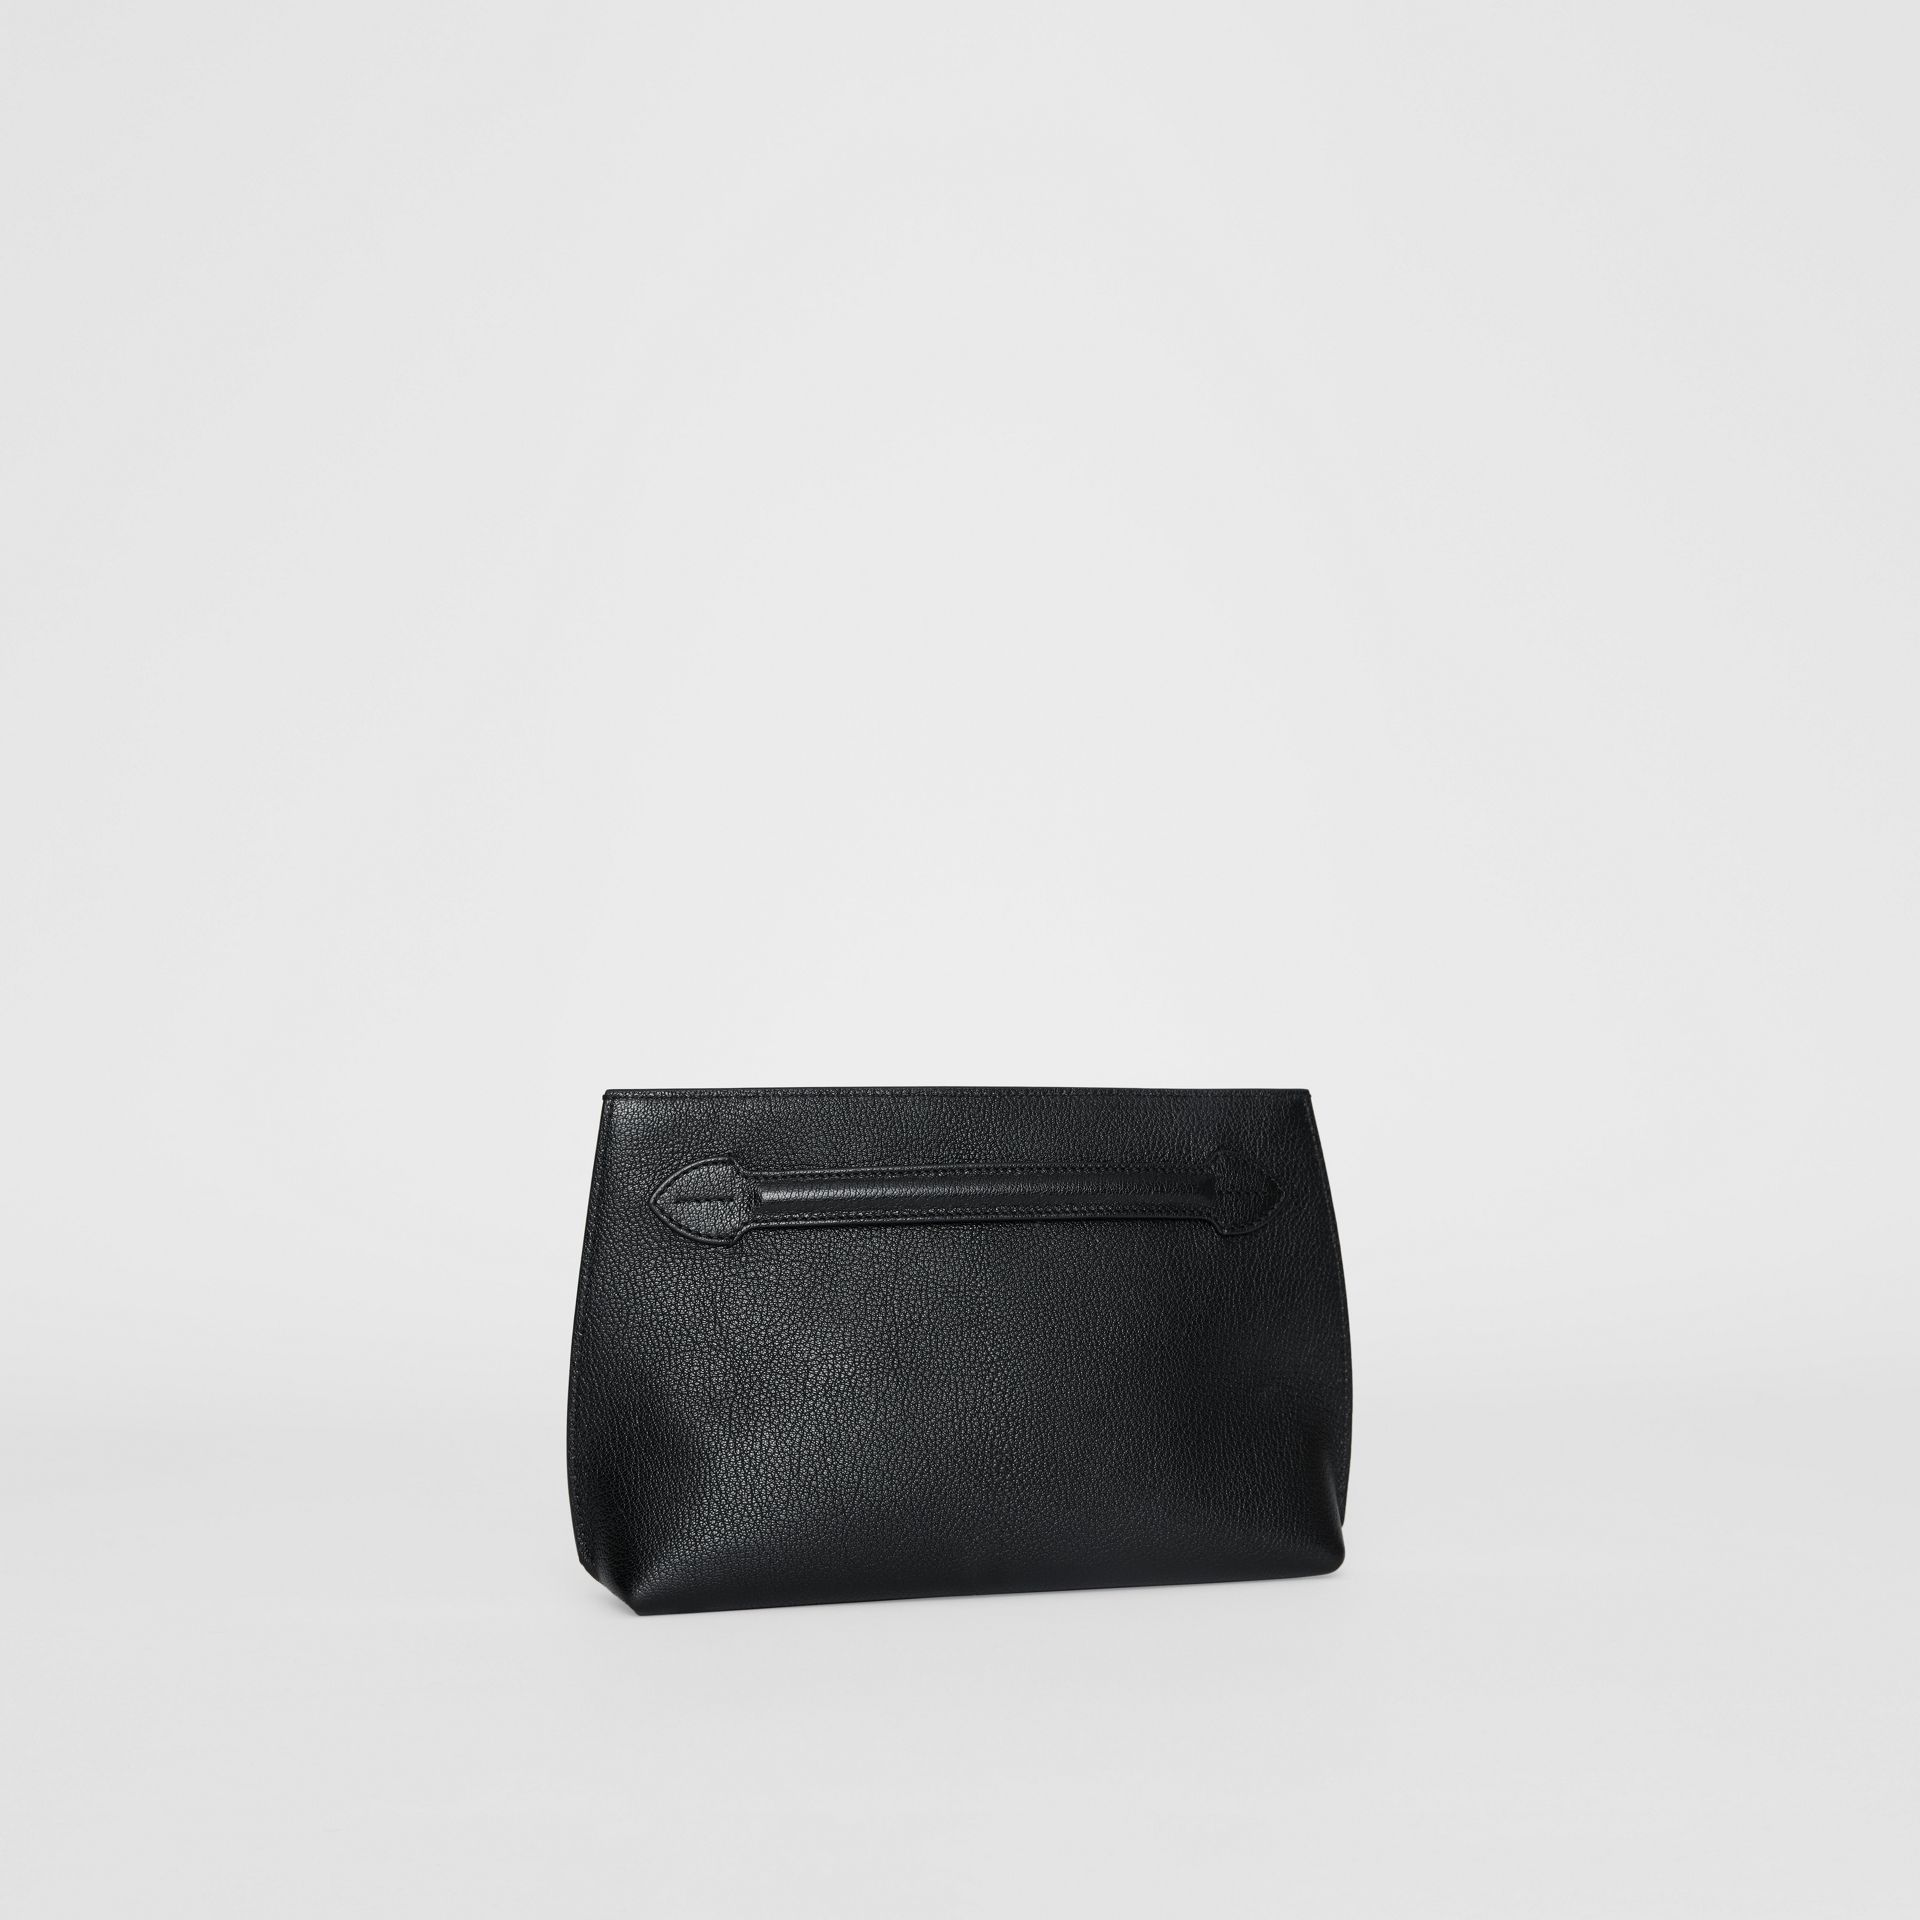 Grainy Leather Wristlet Clutch in Black - Women | Burberry Canada - gallery image 6